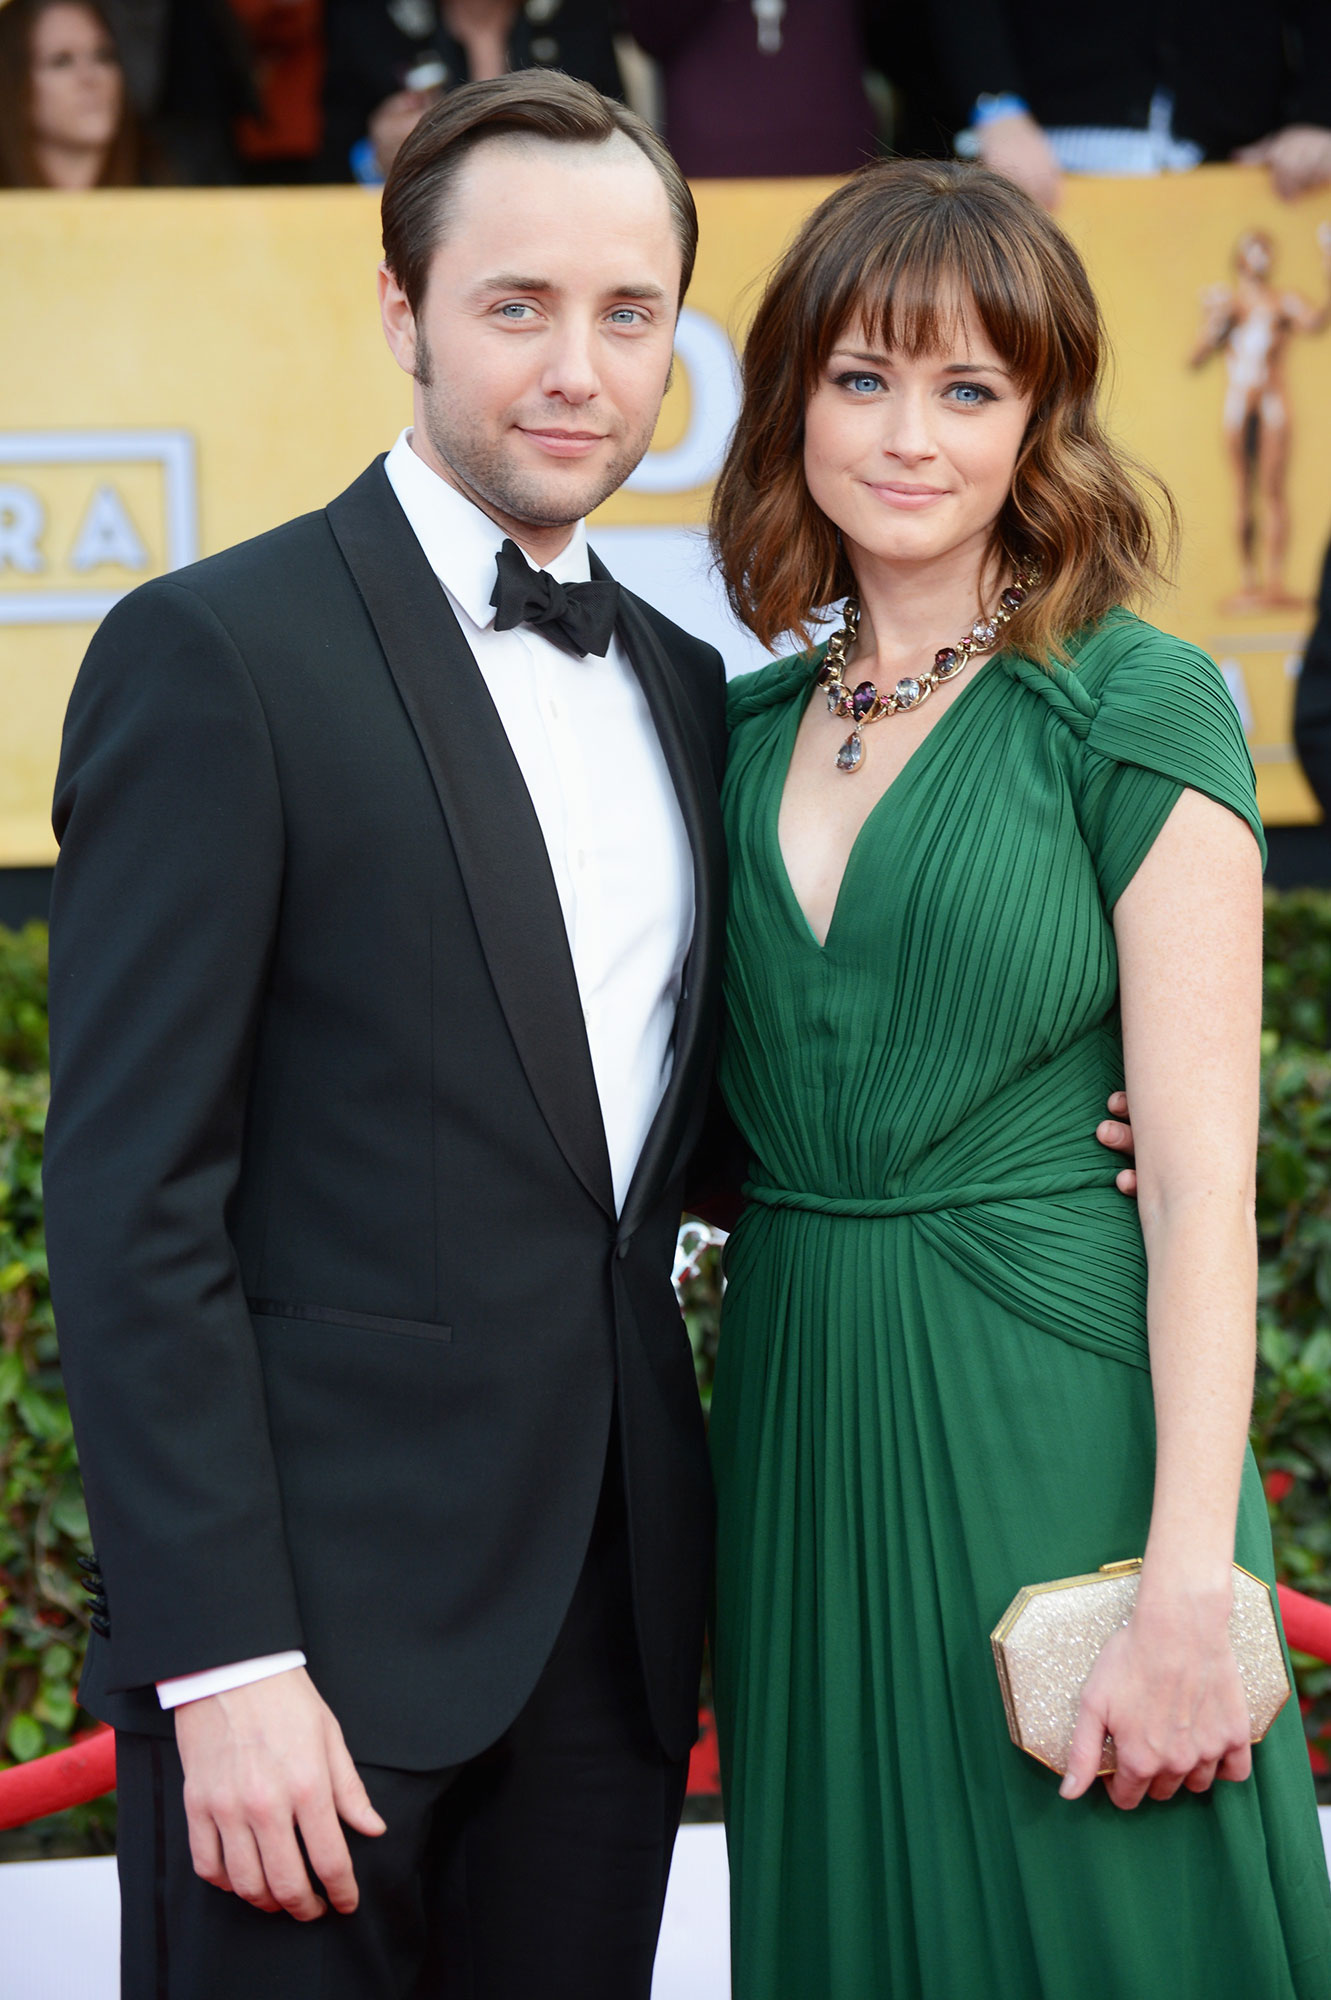 Vincent Kartheiser Alexis Bledel - The Handmaid's Tale actress and the Mad Men alum welcomed a baby boy in the fall of 2015, and they kept the new addition a secret until her Gilmore Girls costar Scott Patterson accidentally spilled the beans.